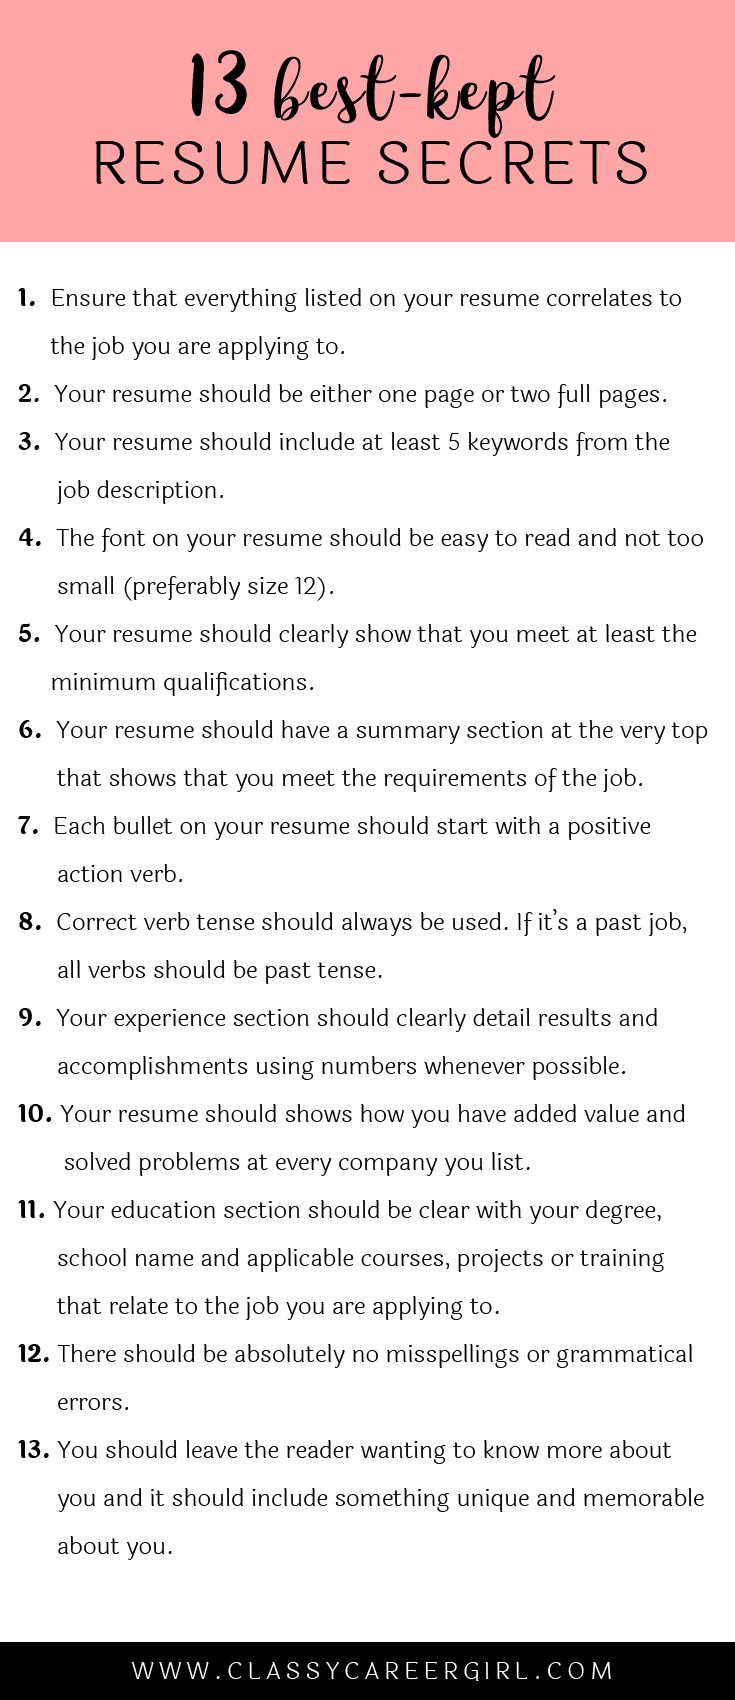 Opposenewapstandardsus  Wonderful  Ideas About Resume On Pinterest  Cv Format Resume Cv And  With Hot Some Hiring Managers Will Toss Your Resume Out If You Dont Know These  With Astounding How To Send A Resume Through Email Also Resume Office Skills In Addition Resume Objectives For Sales And Printable Sample Resume As Well As  Free Resume Additionally Football Coaching Resume From Pinterestcom With Opposenewapstandardsus  Hot  Ideas About Resume On Pinterest  Cv Format Resume Cv And  With Astounding Some Hiring Managers Will Toss Your Resume Out If You Dont Know These  And Wonderful How To Send A Resume Through Email Also Resume Office Skills In Addition Resume Objectives For Sales From Pinterestcom